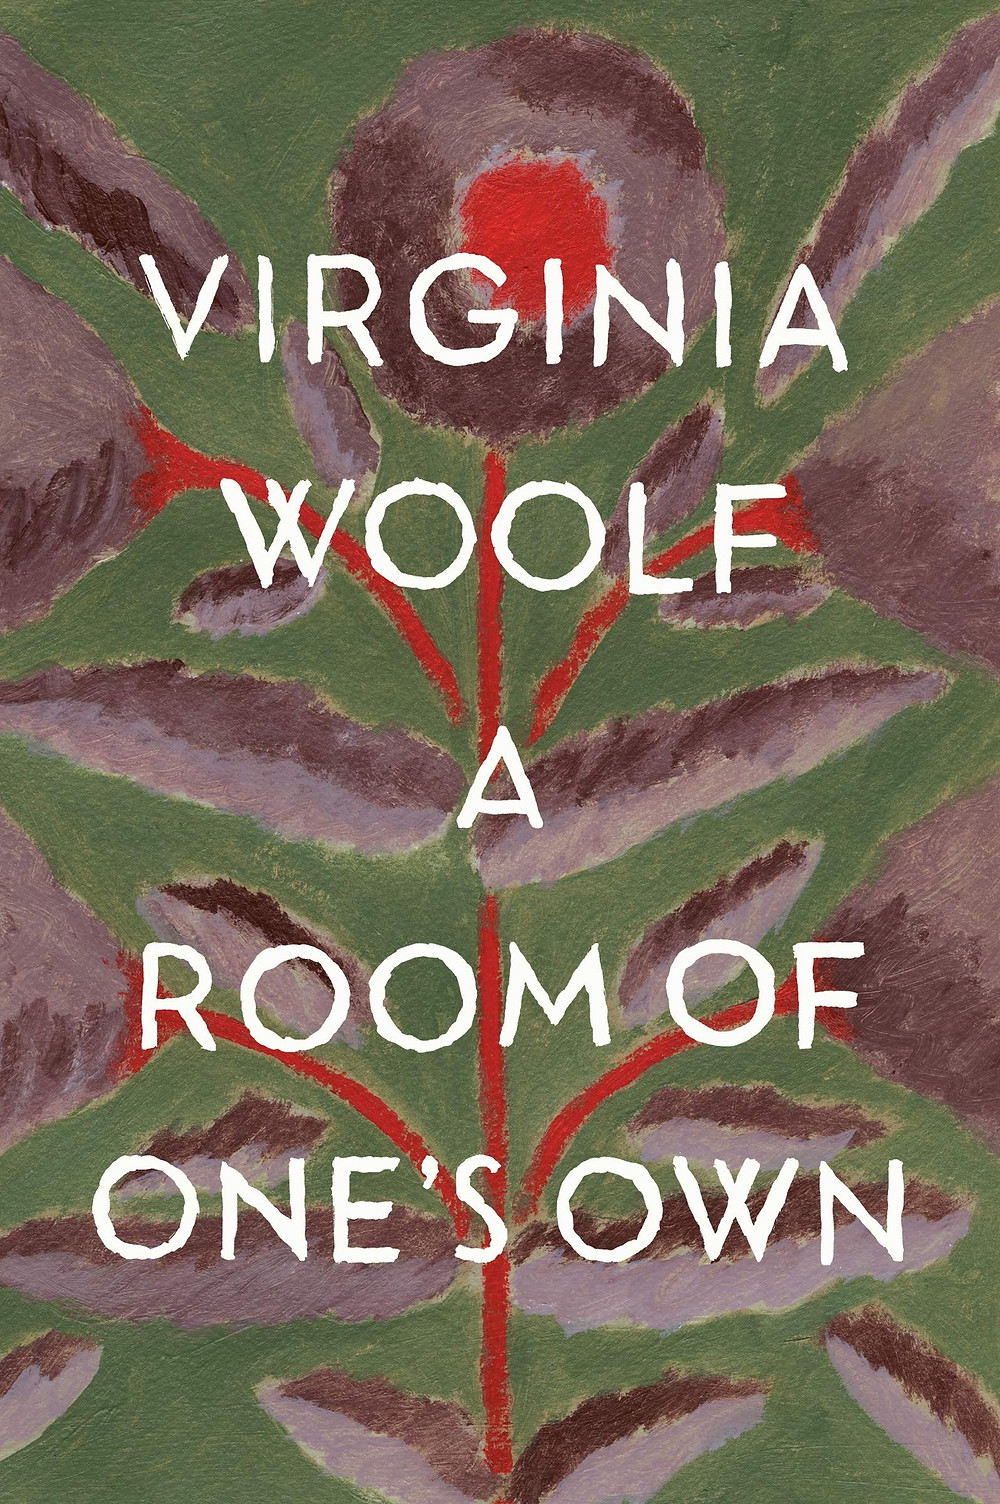 A Room of One's Own Virginia Woolf (Author) The Book Slut book reviews thebookslutFORMAT Paperback $13.99 $12.87 Paperback $15.99 $14.71 Paperback $4.60 SEE ALL FORMATS  BUY NOW  ADD TO CART GET THE E-BOOK   ADD TO WISHLIST AVAILABLE Description This literary landmark about the male supremacy and female subordination at Oxford University shines a brave, searing light on the obstacles that must be overcome on the path toward a harmonious unity of the sexes. Product Details Price: $13.99  $12.87 Publisher: Mariner Books Published Date: December 27, 1989 Pages: 132 Dimensions: 5.2 X 0.4 X 7.9 inches | 0.25 pounds Language: English Type: Paperback ISBN: 9780156787338 BISAC Categories: Classics Feminism & Feminist Theory General Writing - Authorship General General Humorous - General